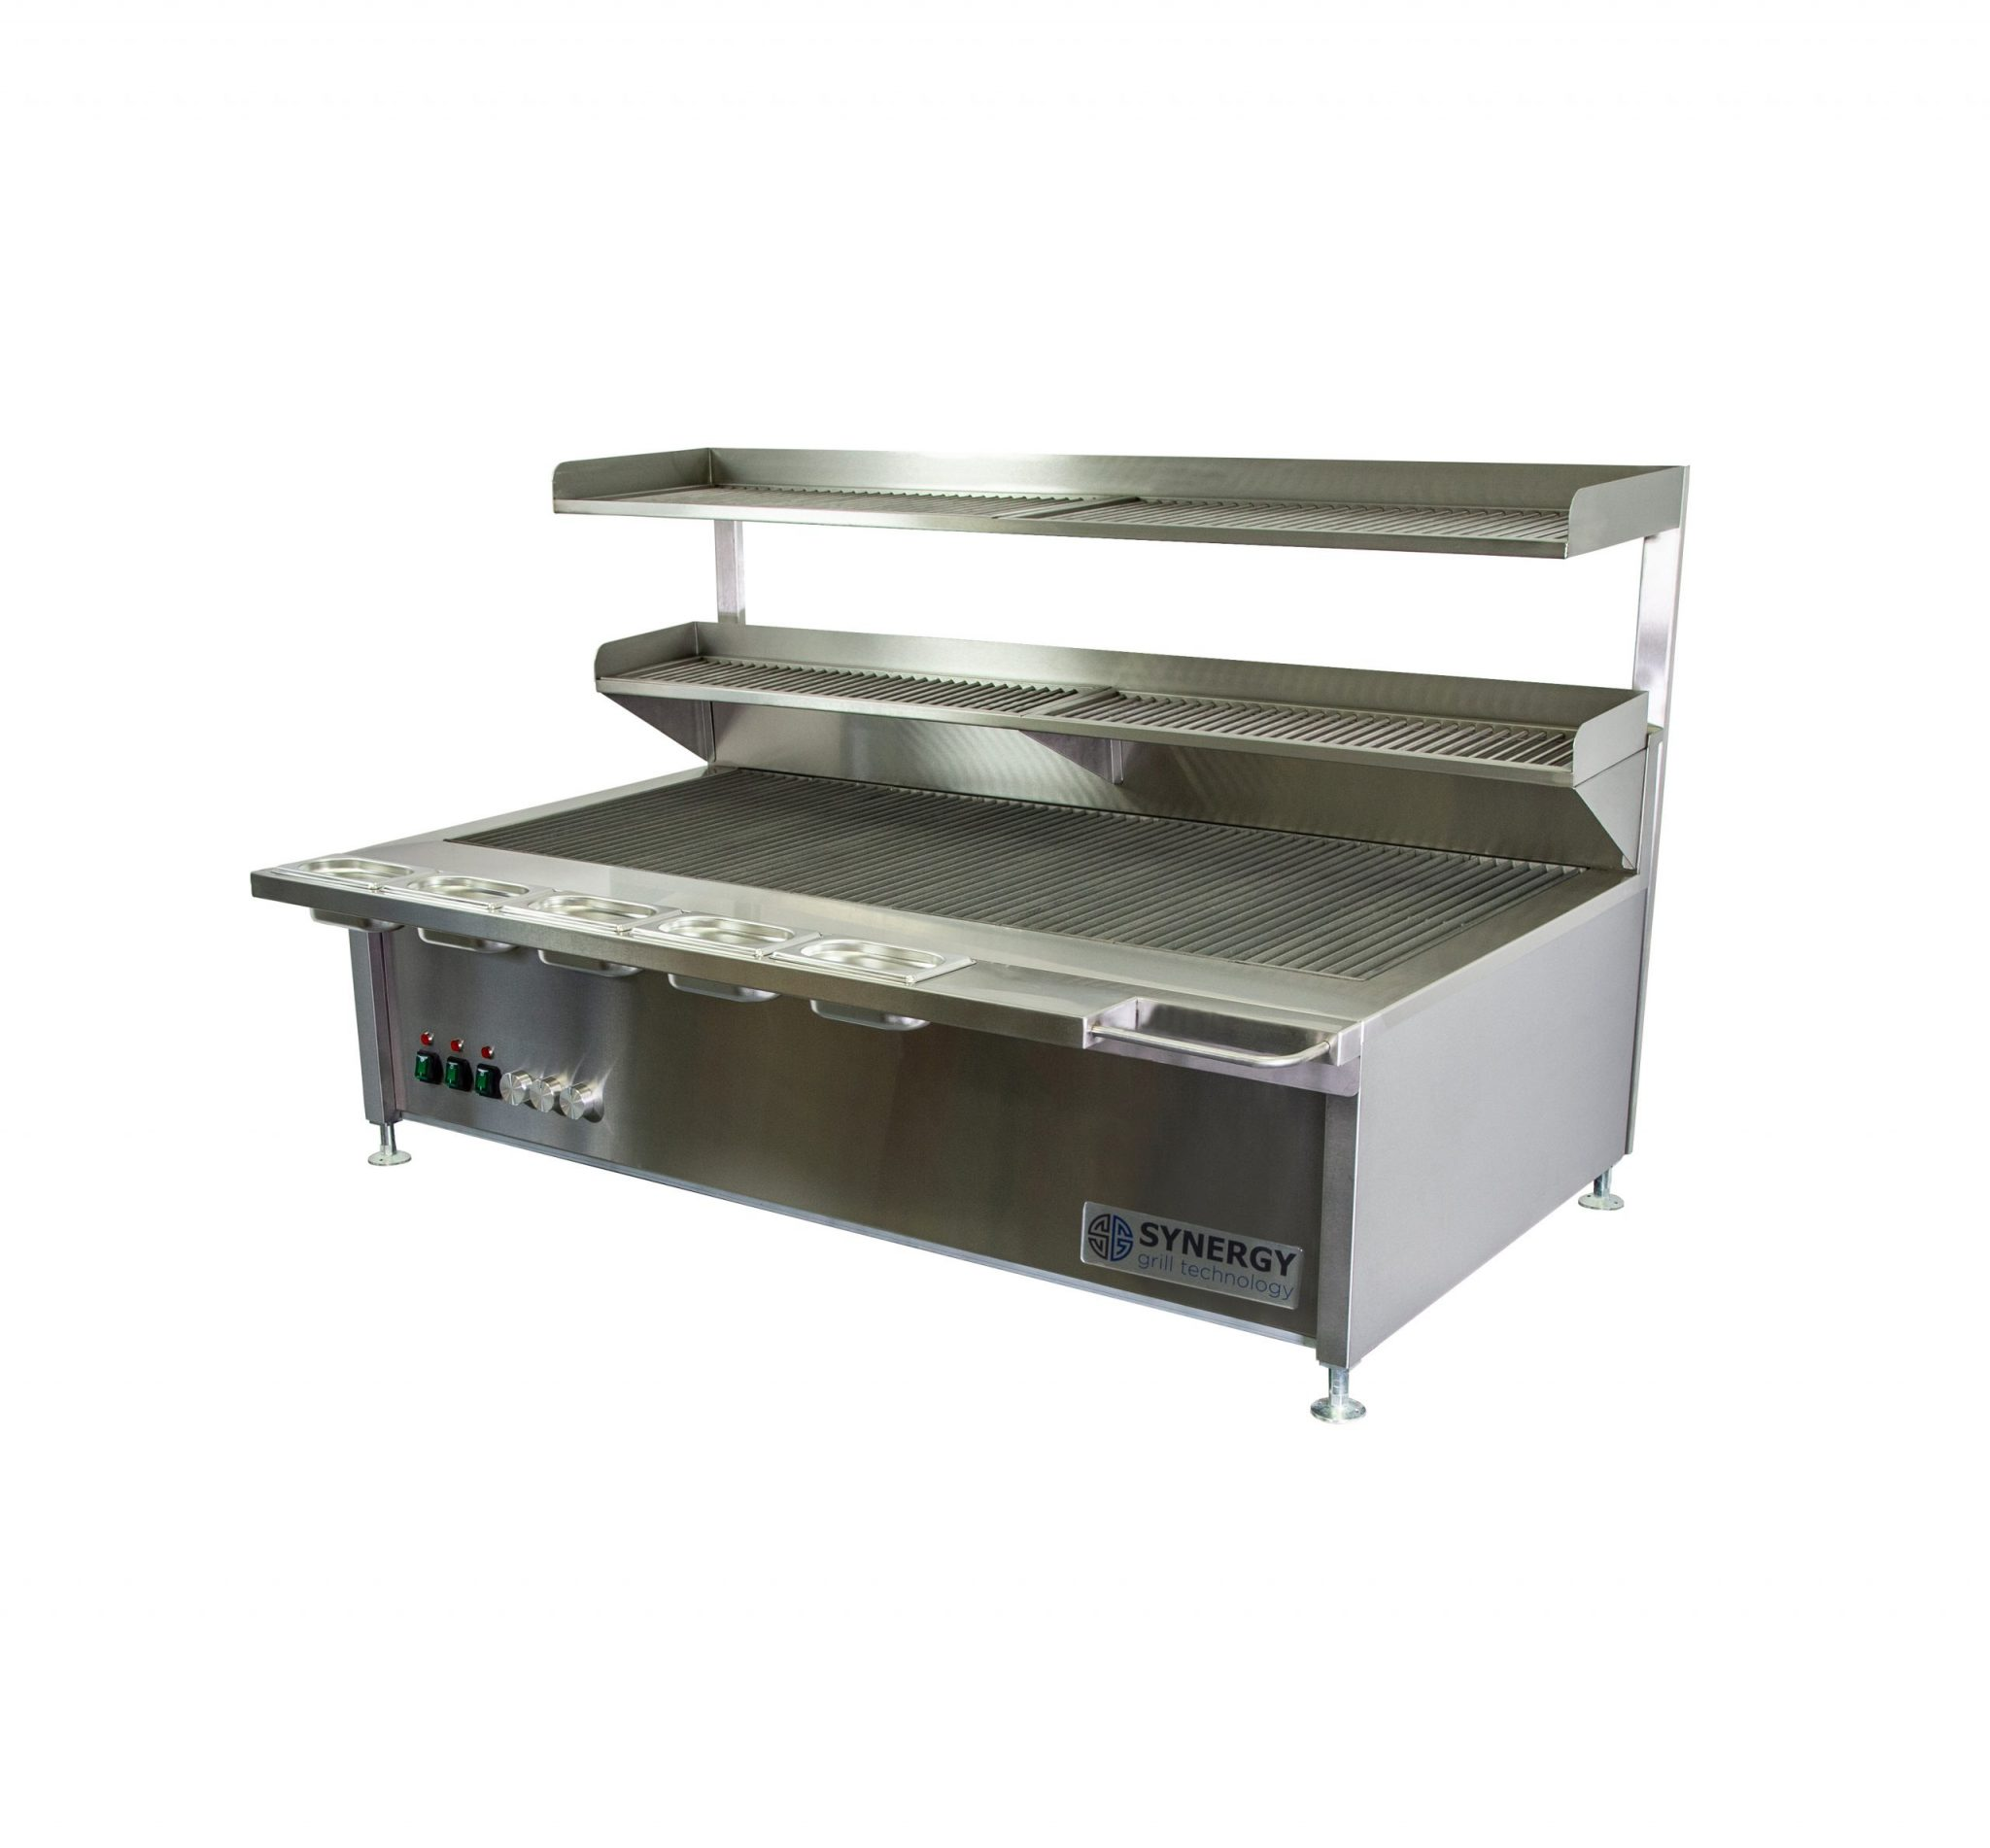 Synergy Grill Trilogy ST1300